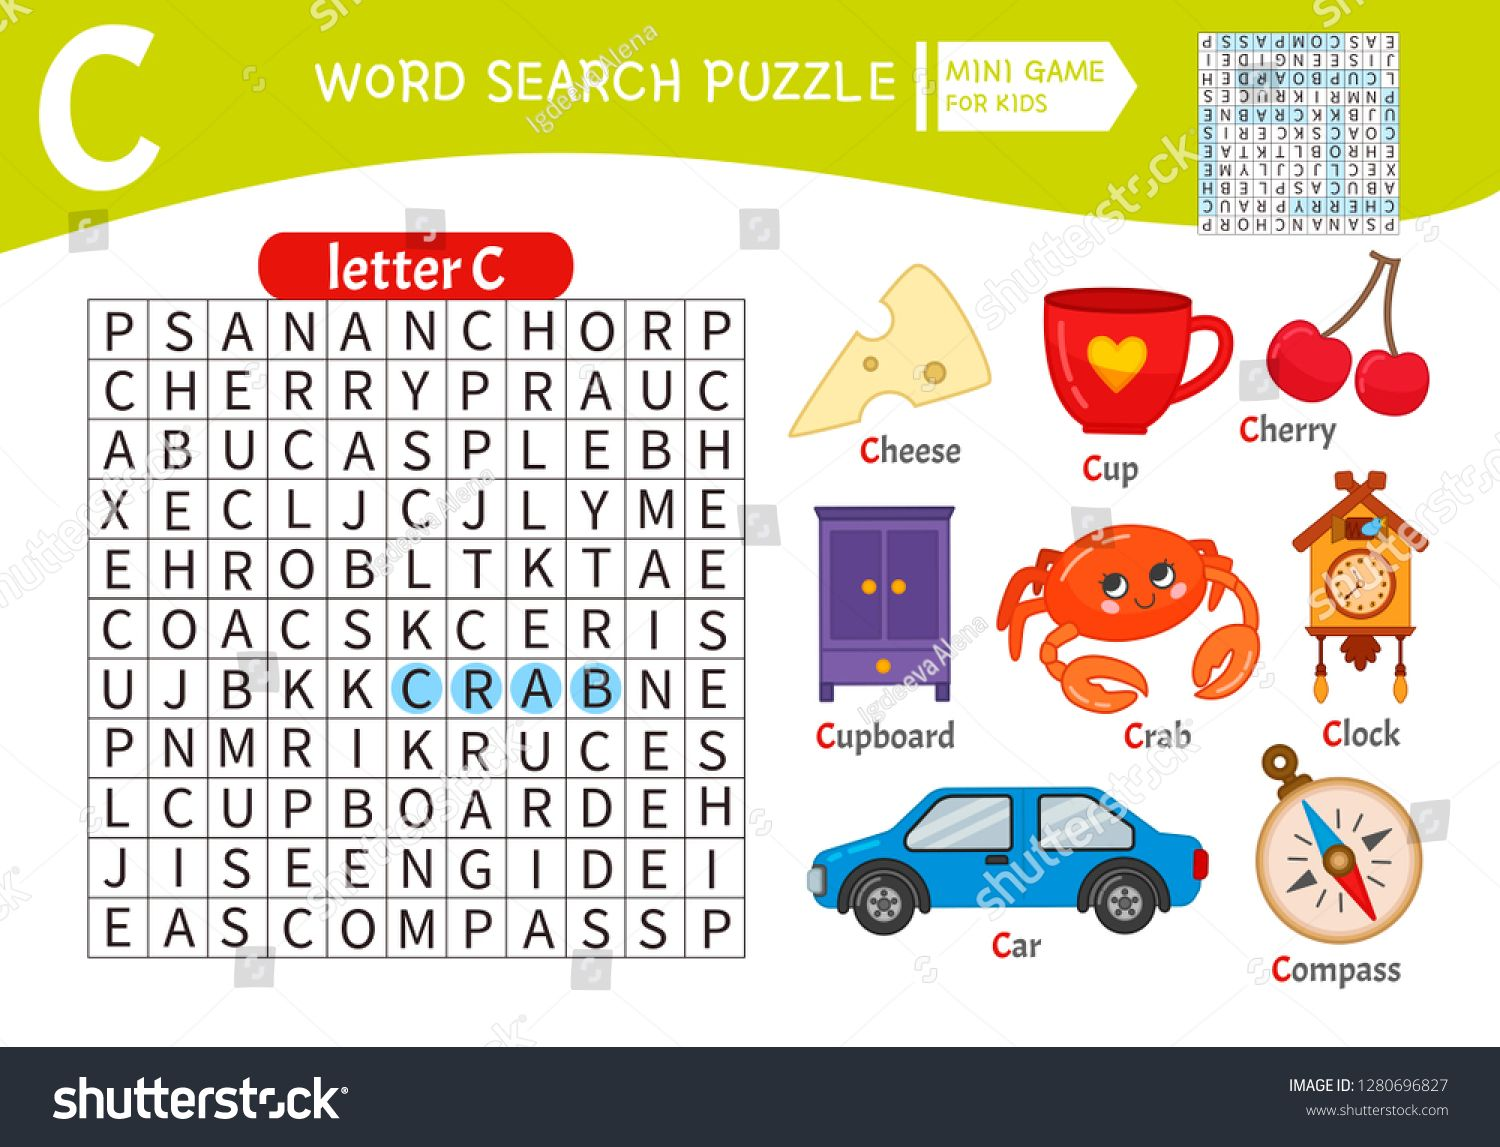 Words Puzzle Children Educational Game Learning Vocabulary Letter C Cartoon Objects On A Letter C Educational Games For Kids Word Puzzles Educational Games